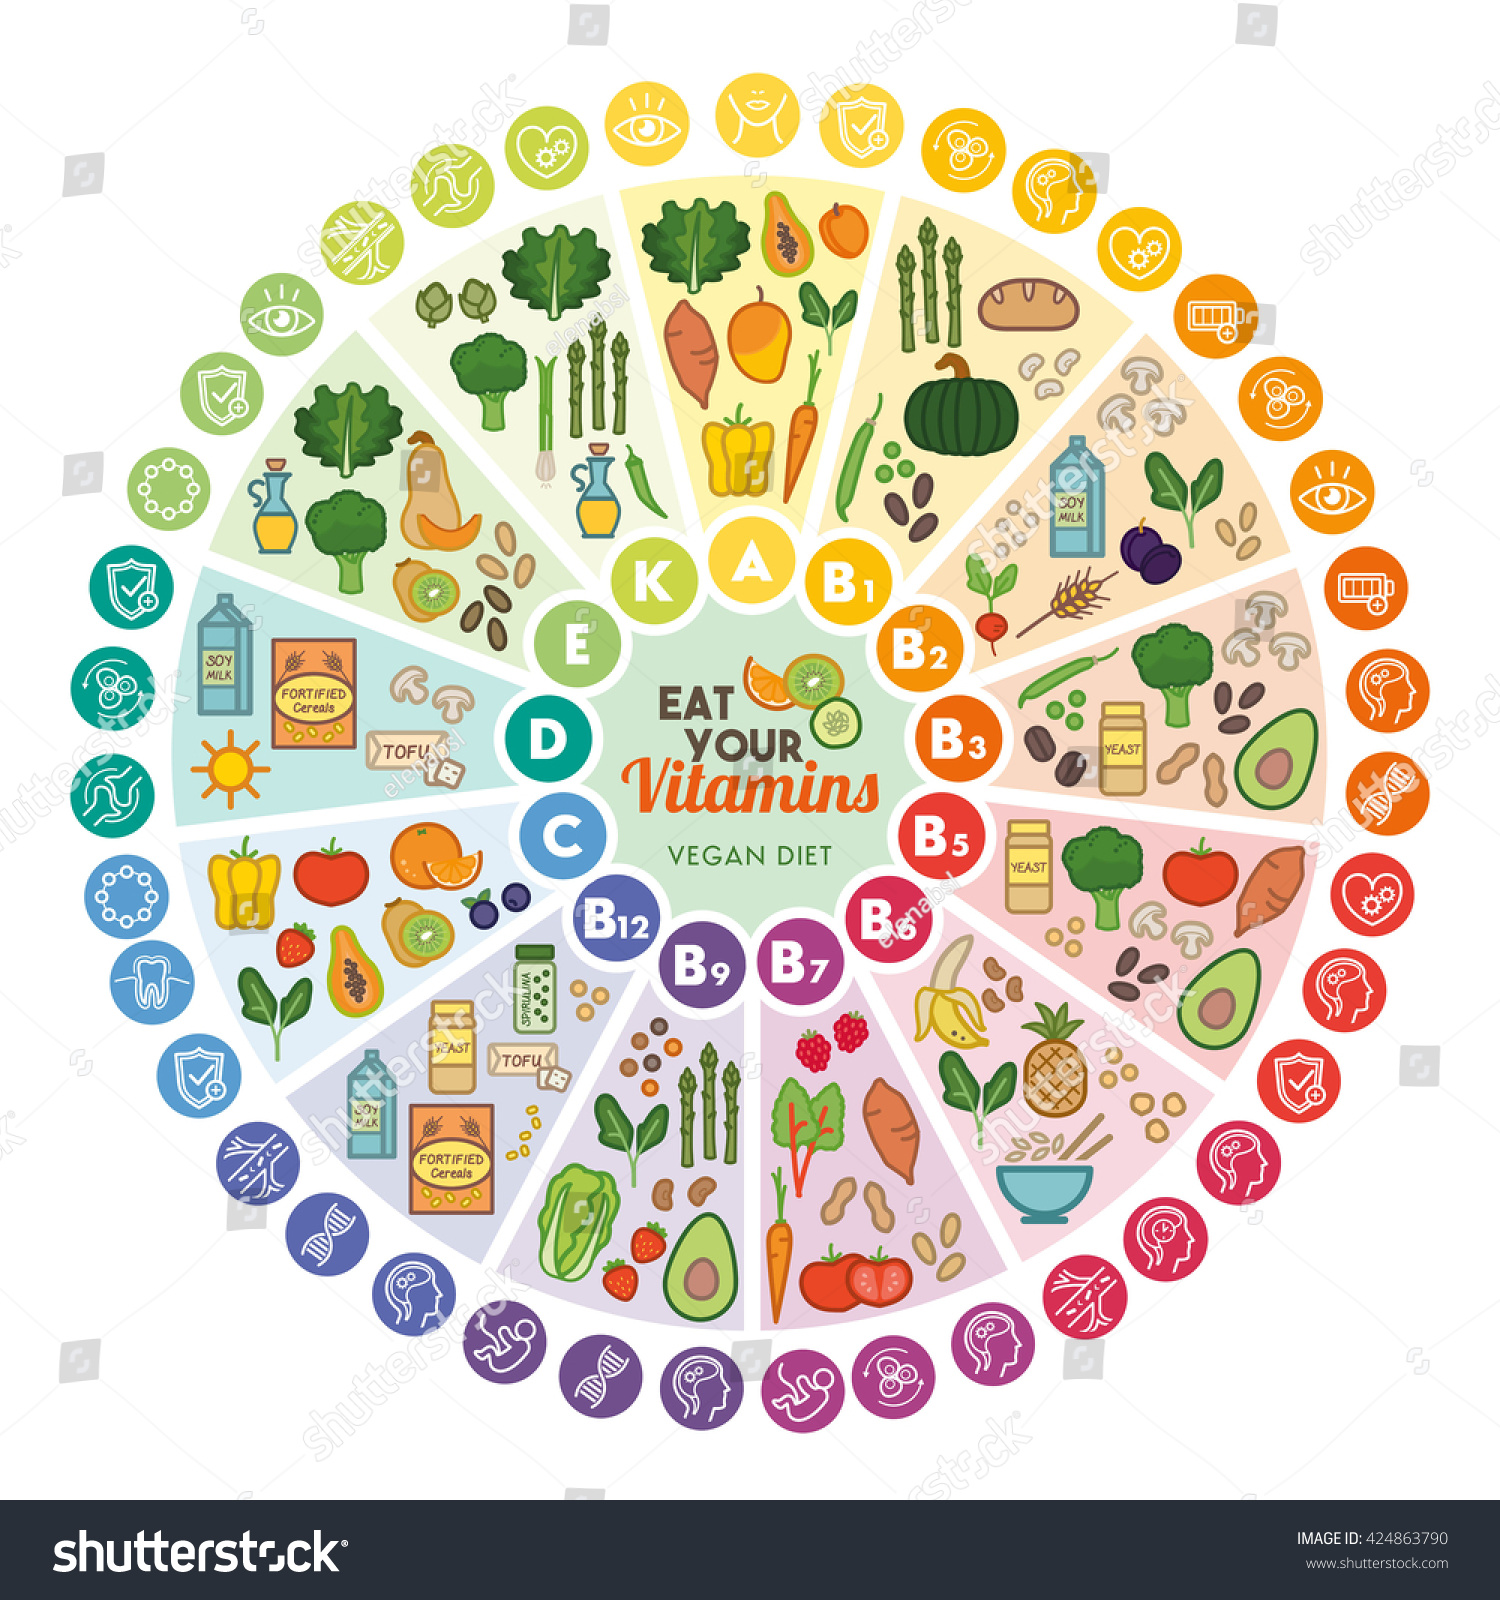 Vitamin vegan food sources functions rainbow stock vector vitamin vegan food sources and functions rainbow wheel chart with food icons healthy eating nvjuhfo Images